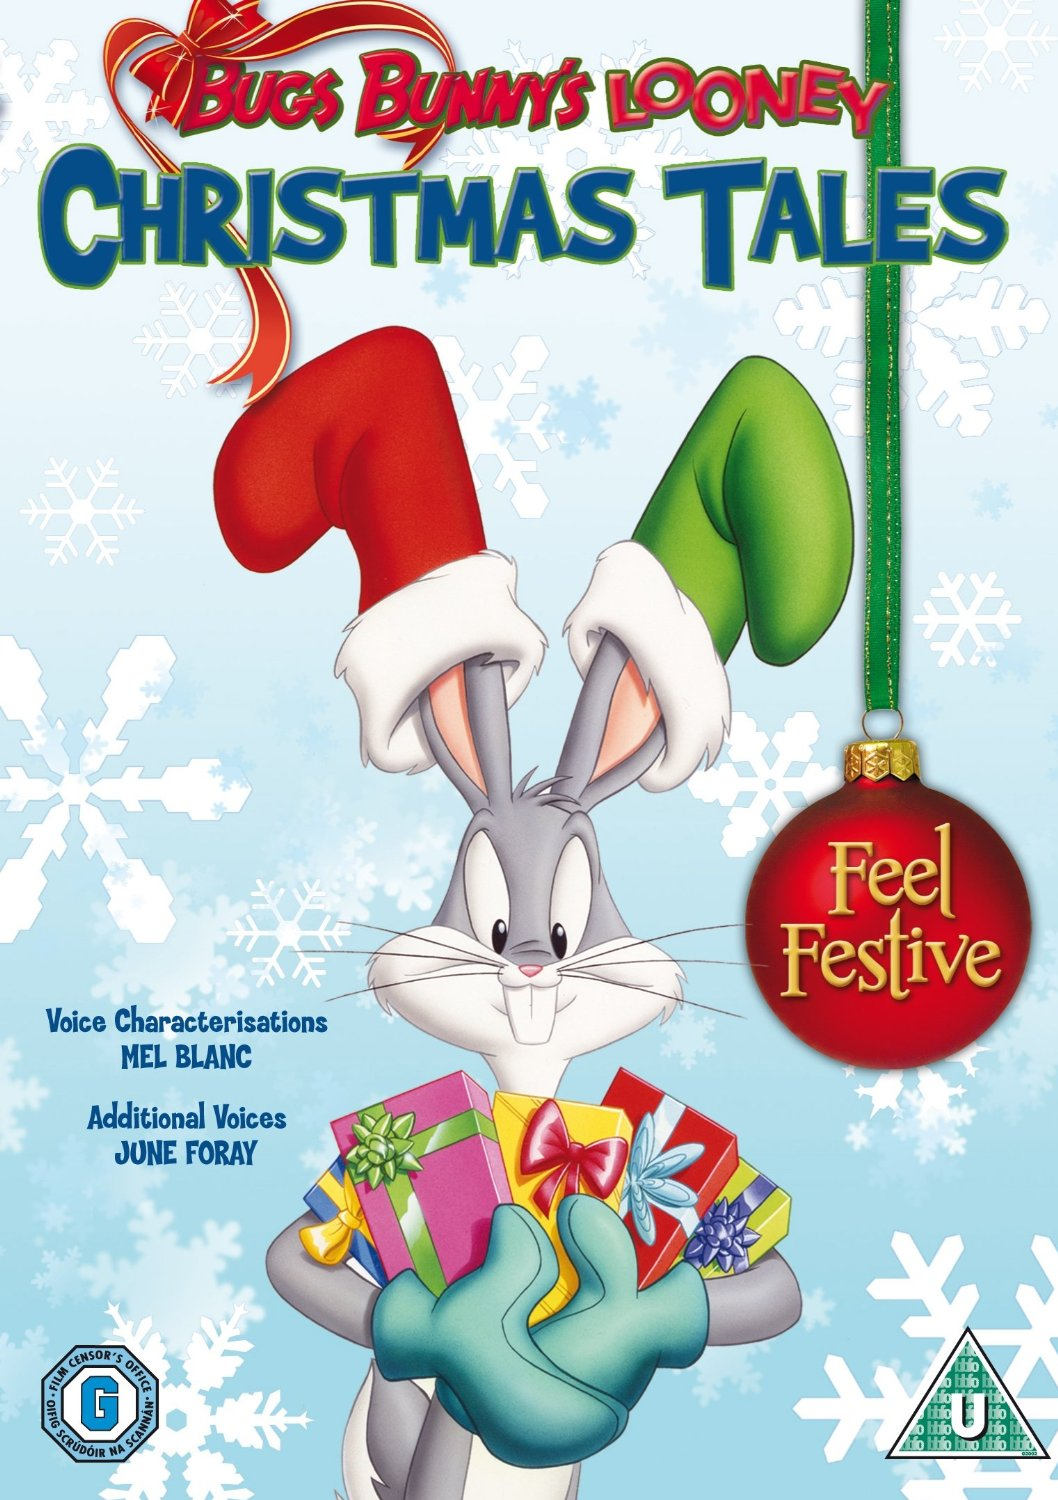 Bugs Bunny's Looney Christmas Tales (1979) ταινιες online seires oipeirates greek subs